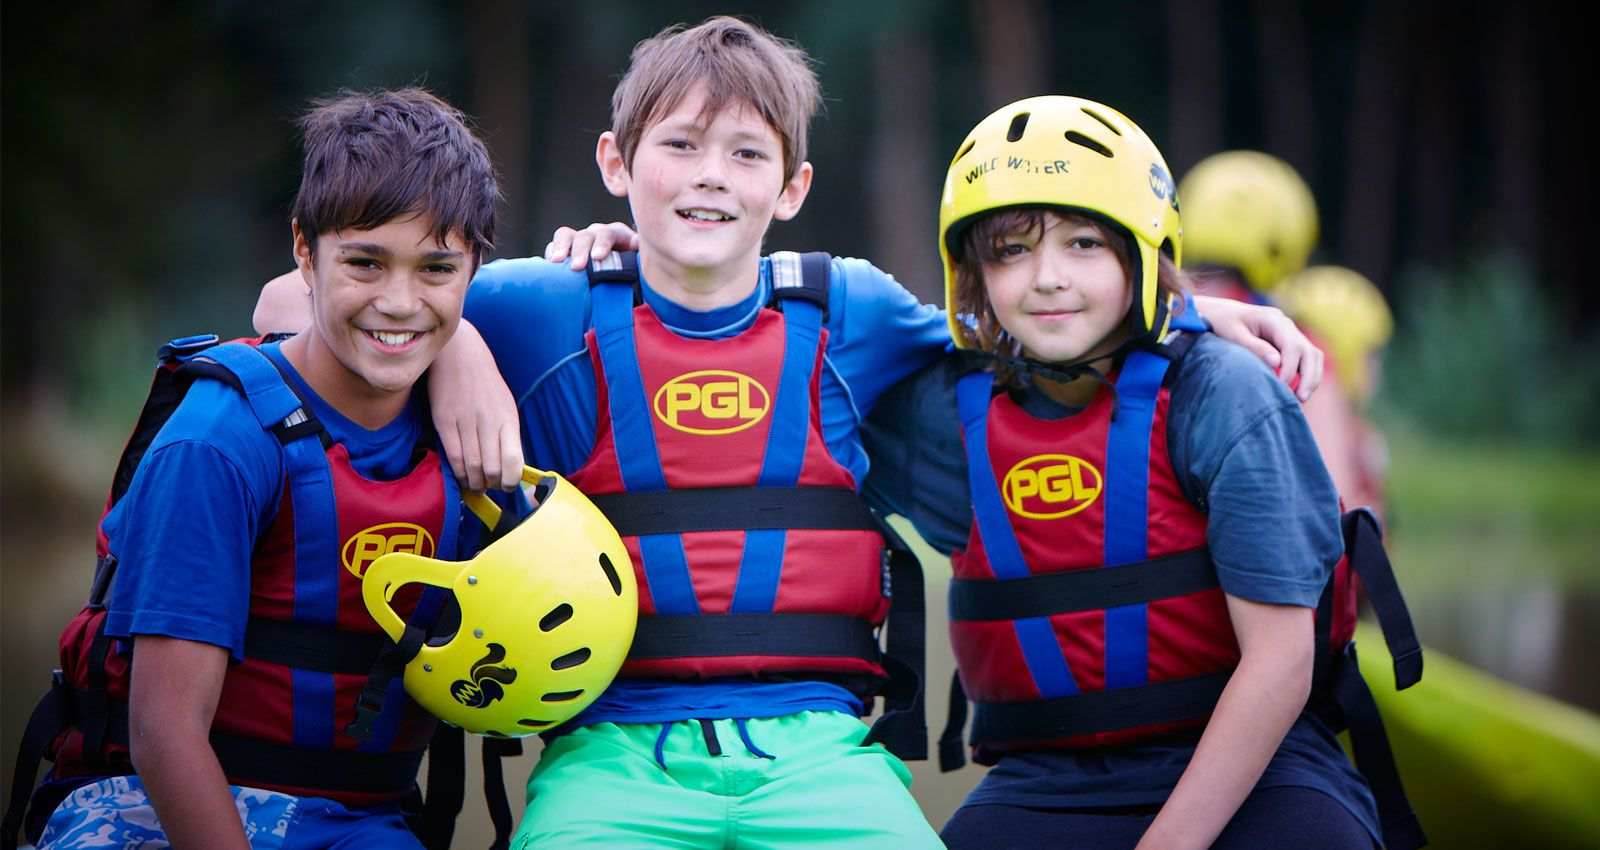 PGL Adventure Holidays - Specialist Holidays for 7-17 year olds across the UK and France - Creative Kids – Video Games Workshop